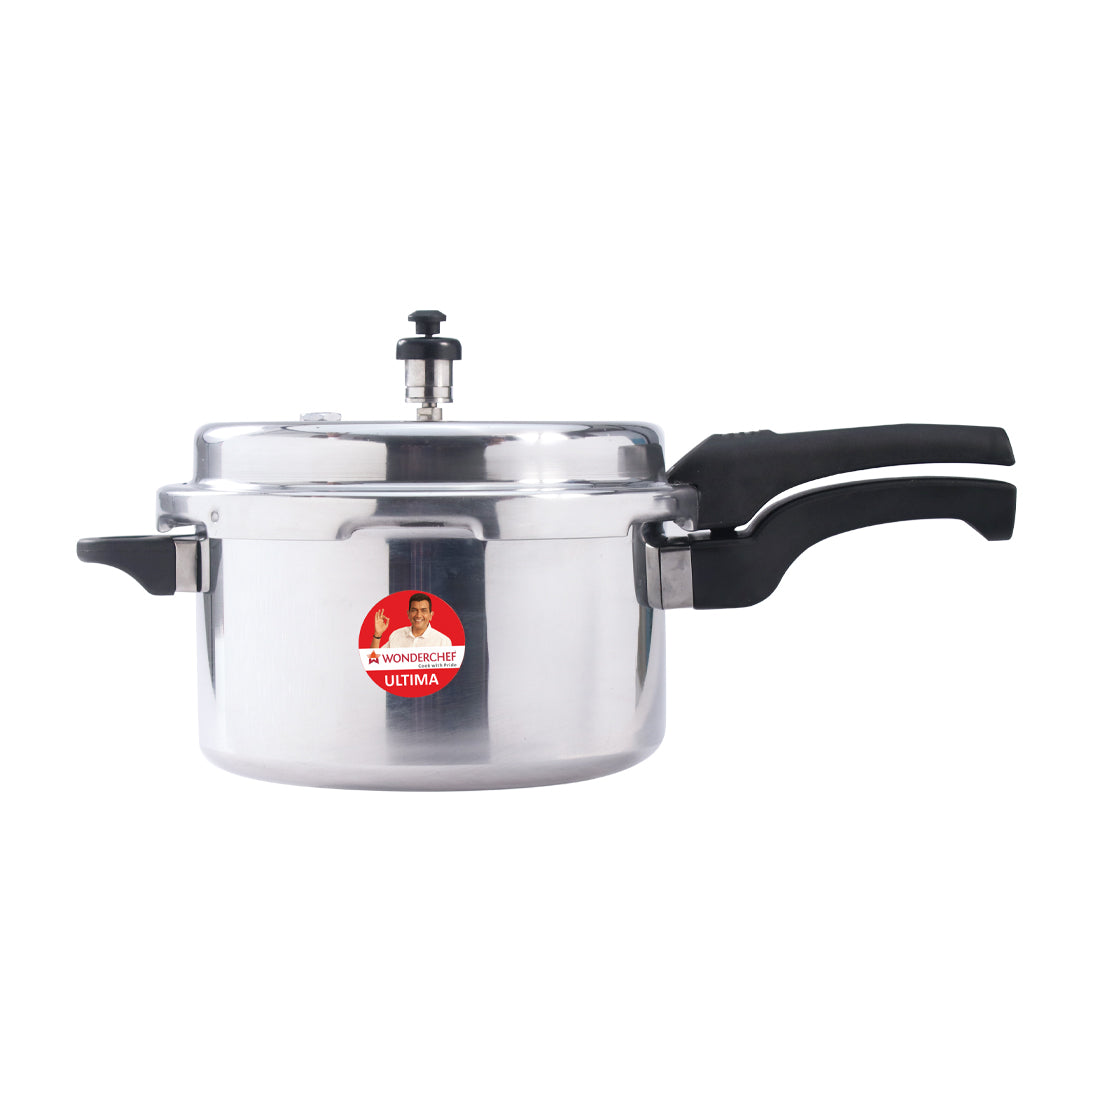 Wonderchef Ultima Pressure Cooker Outer Lid 5L - Wonderchef